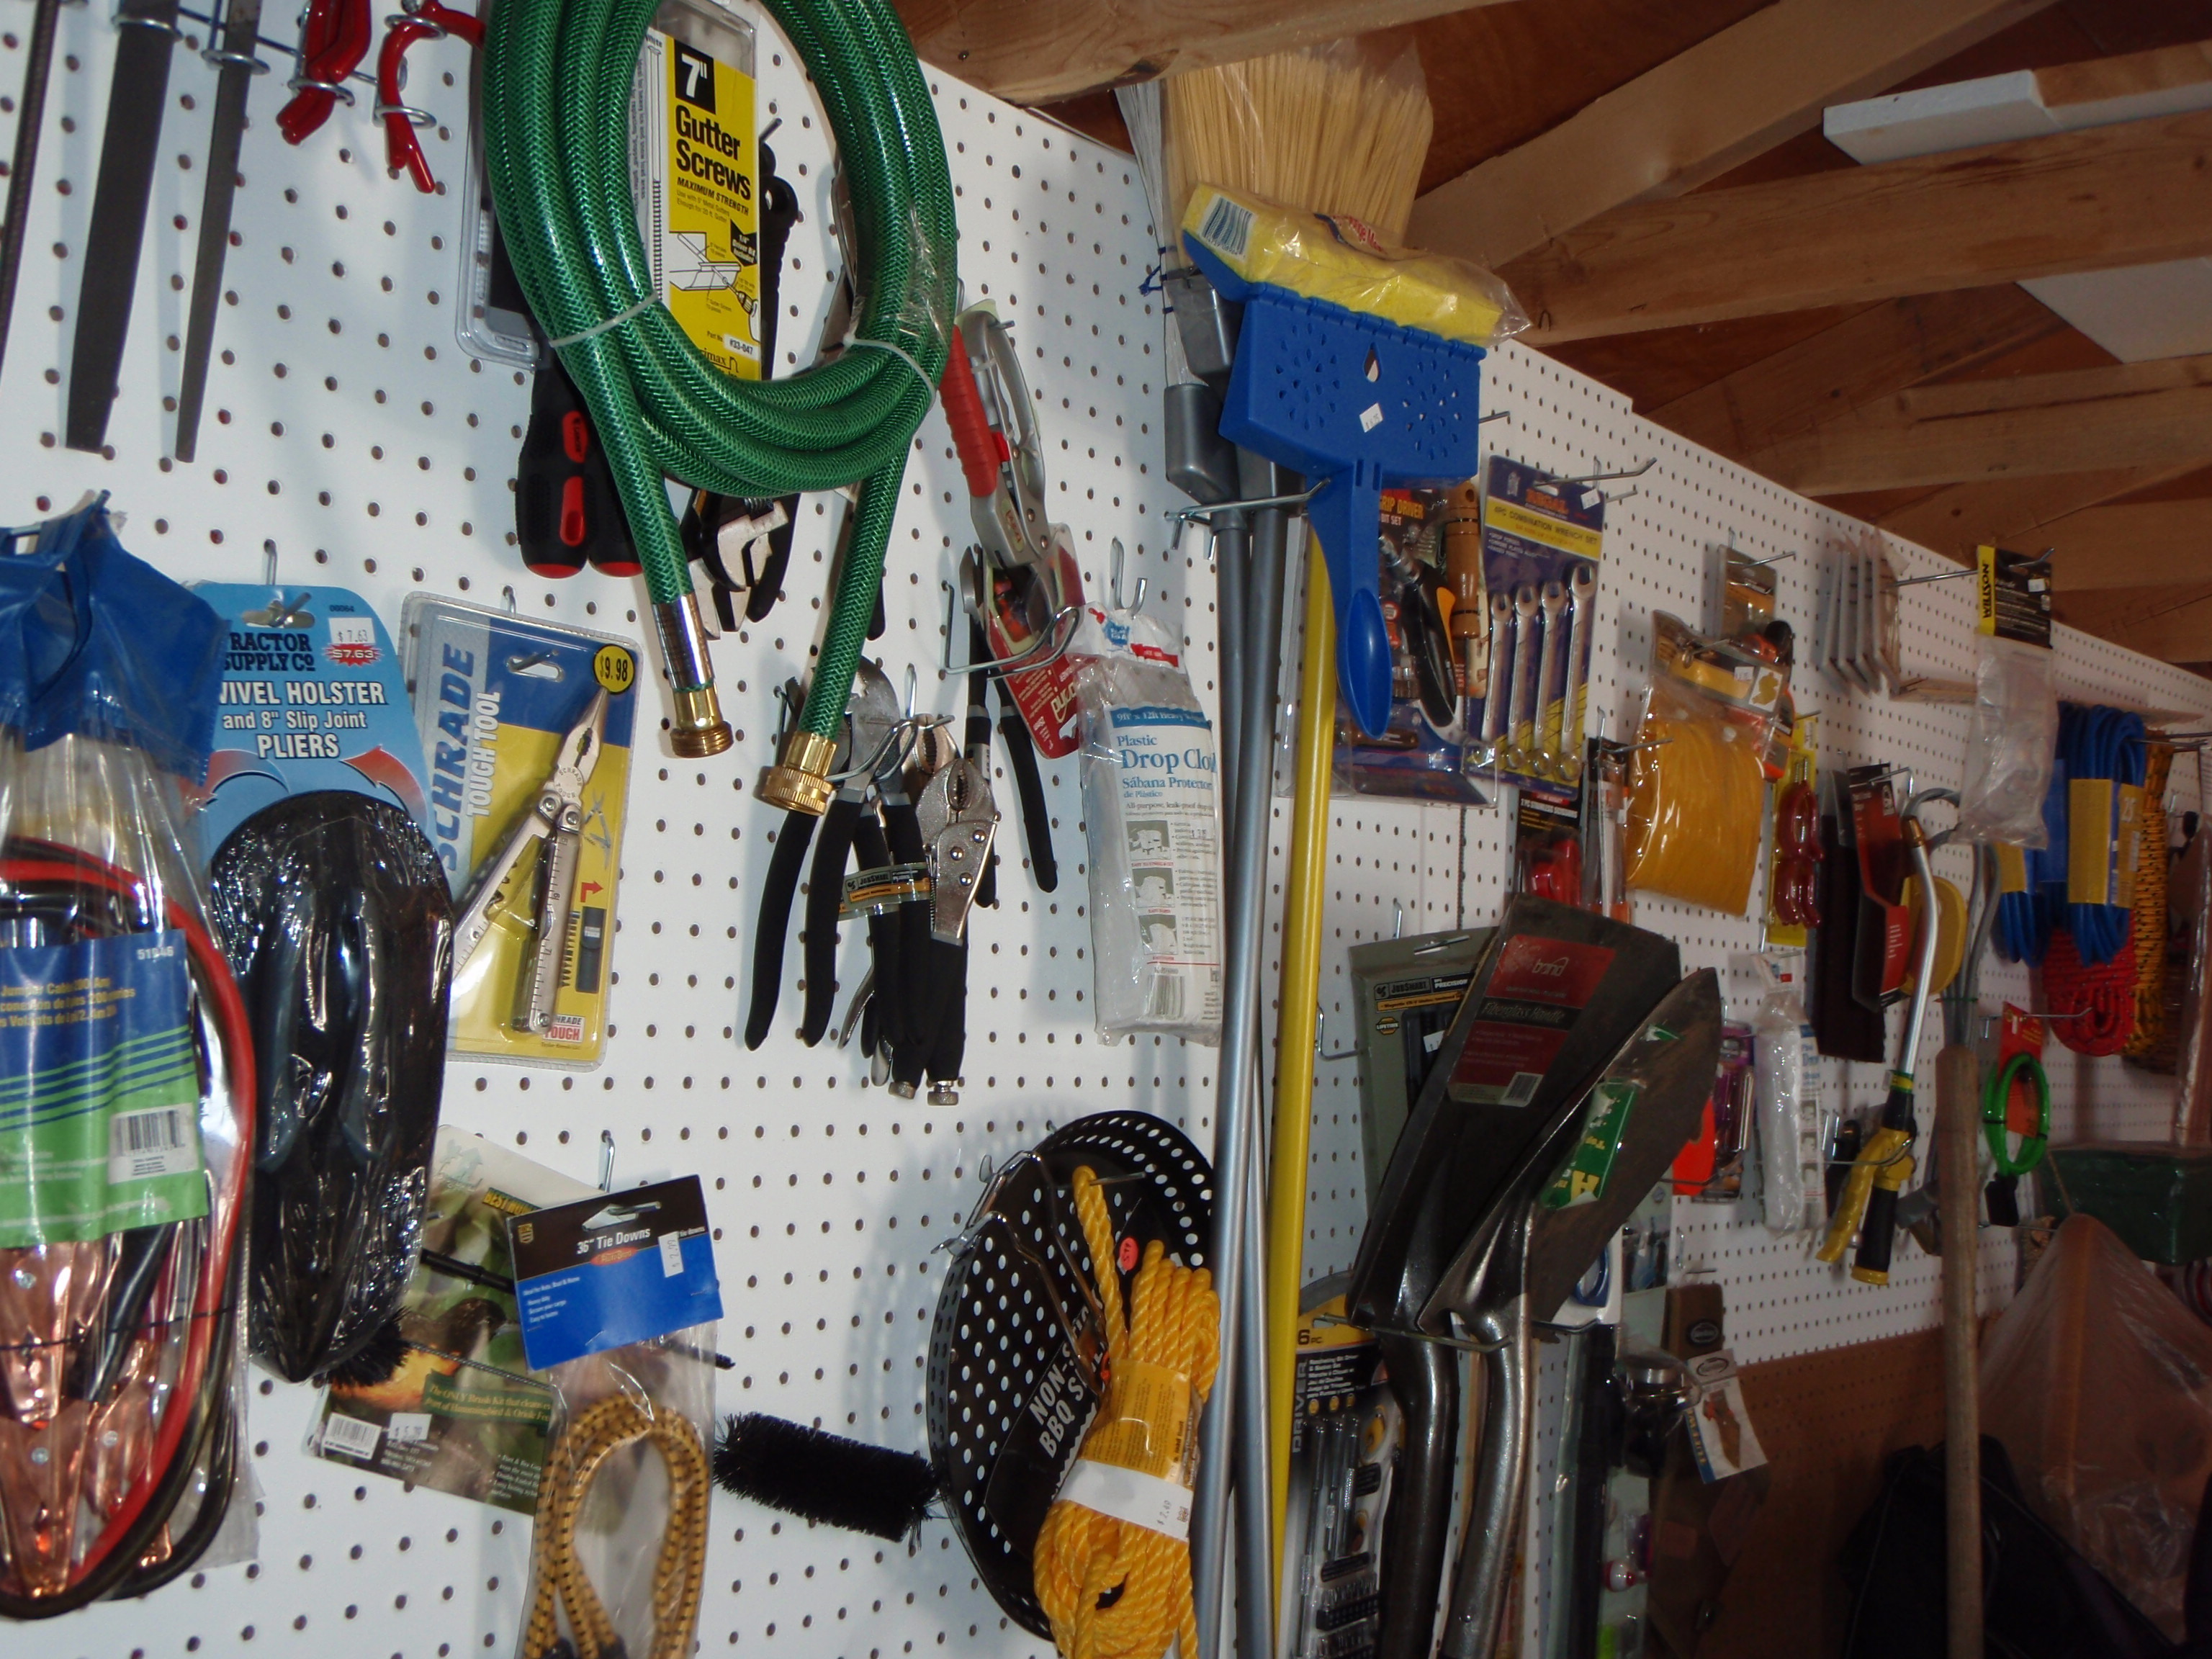 The Modern Compact Tool Shed